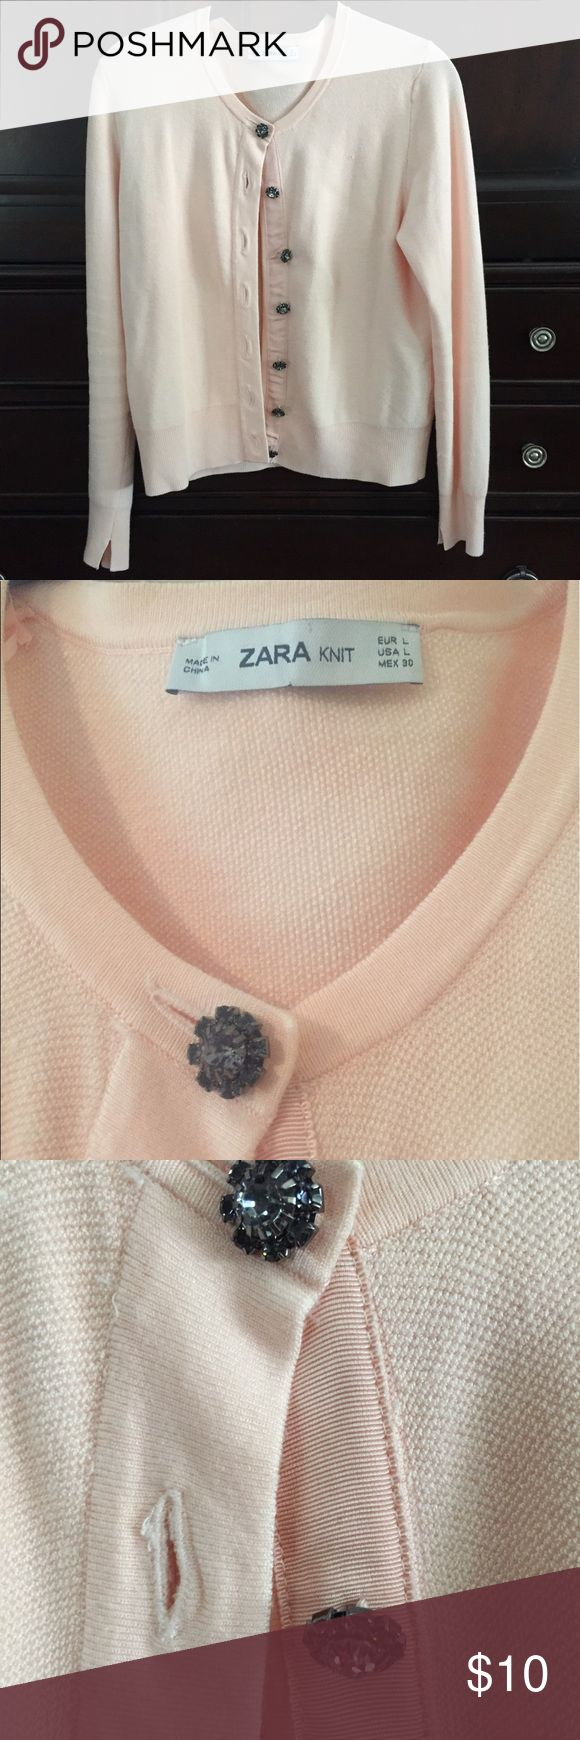 Zara knit cardigan with jeweled buttons Size Large light pink cardigan purchased this spring. Worn only a couple of times. The sparkling / jeweled buttons are all intact and lovely. Pictures show there is some pulling that you would find with this kind of material.  Very comfortable. Zara Tops